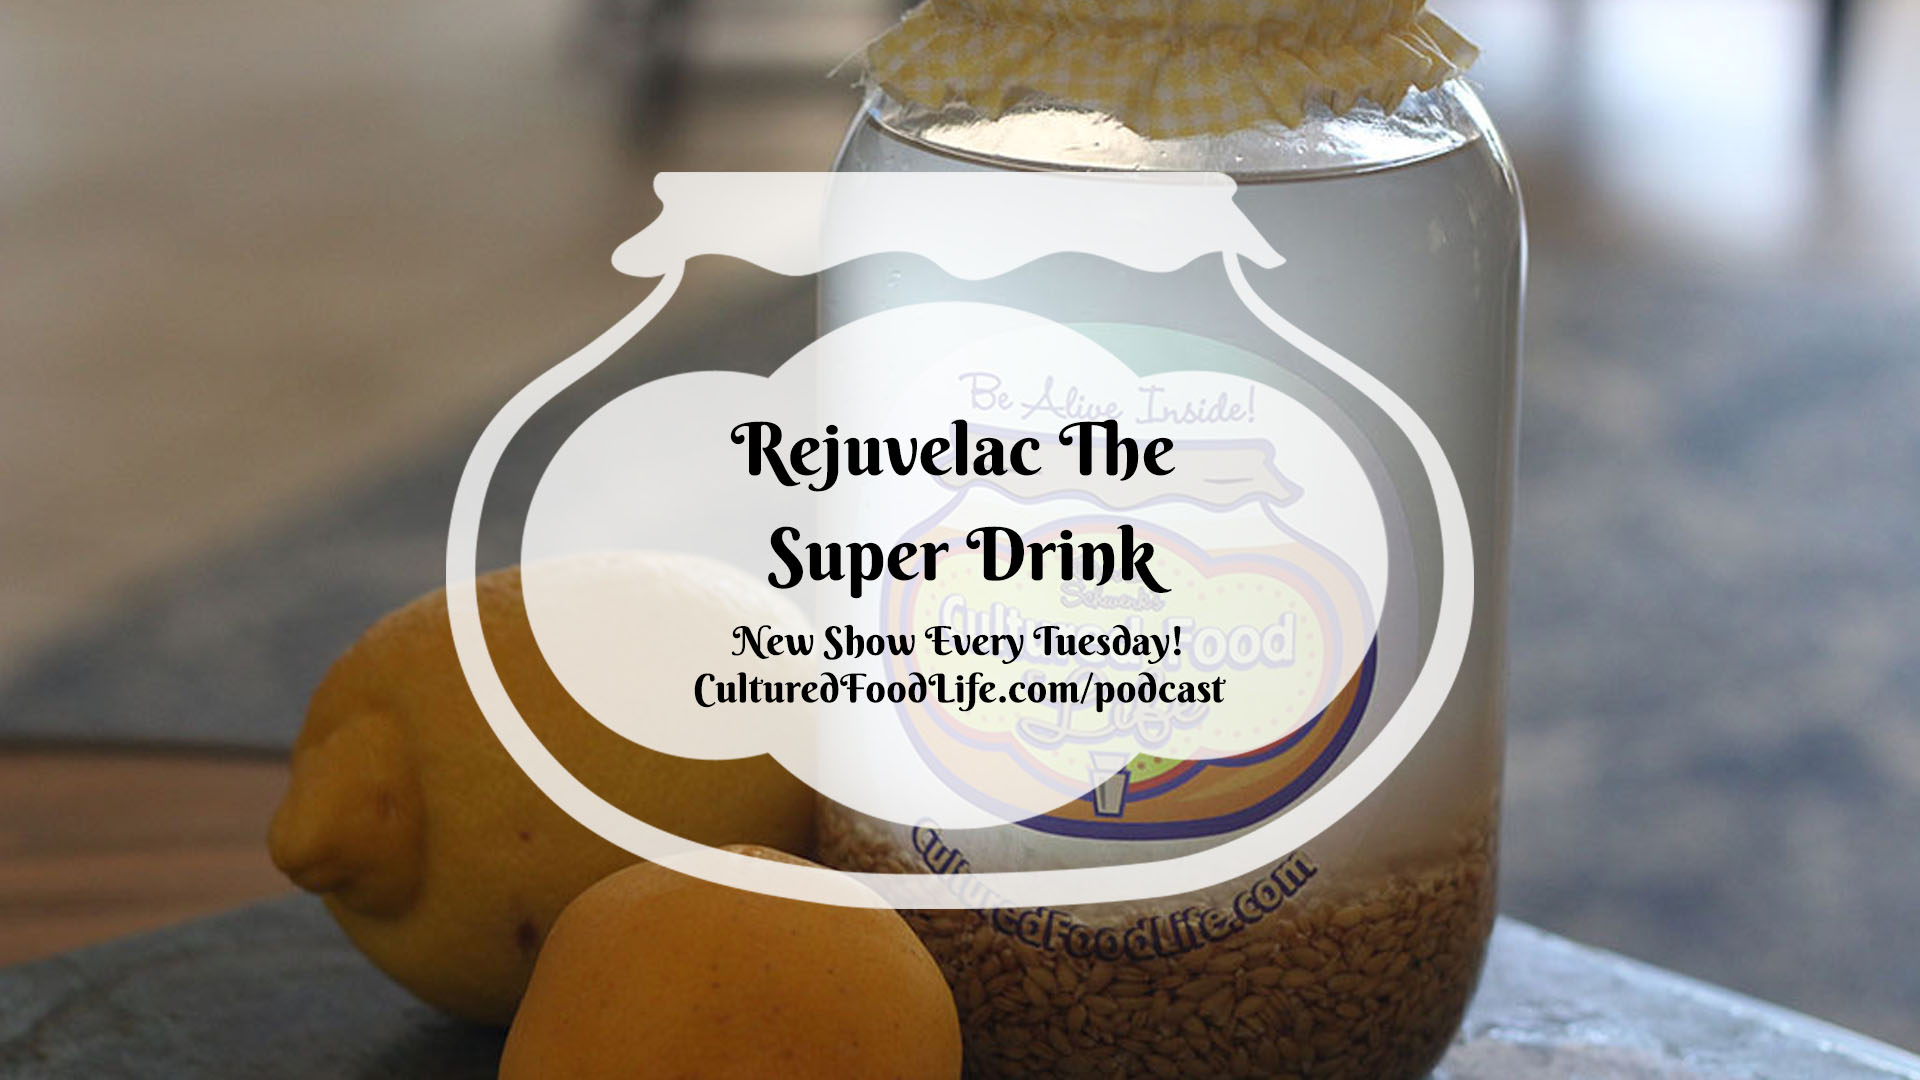 Rejuvelac The Super Drink Full